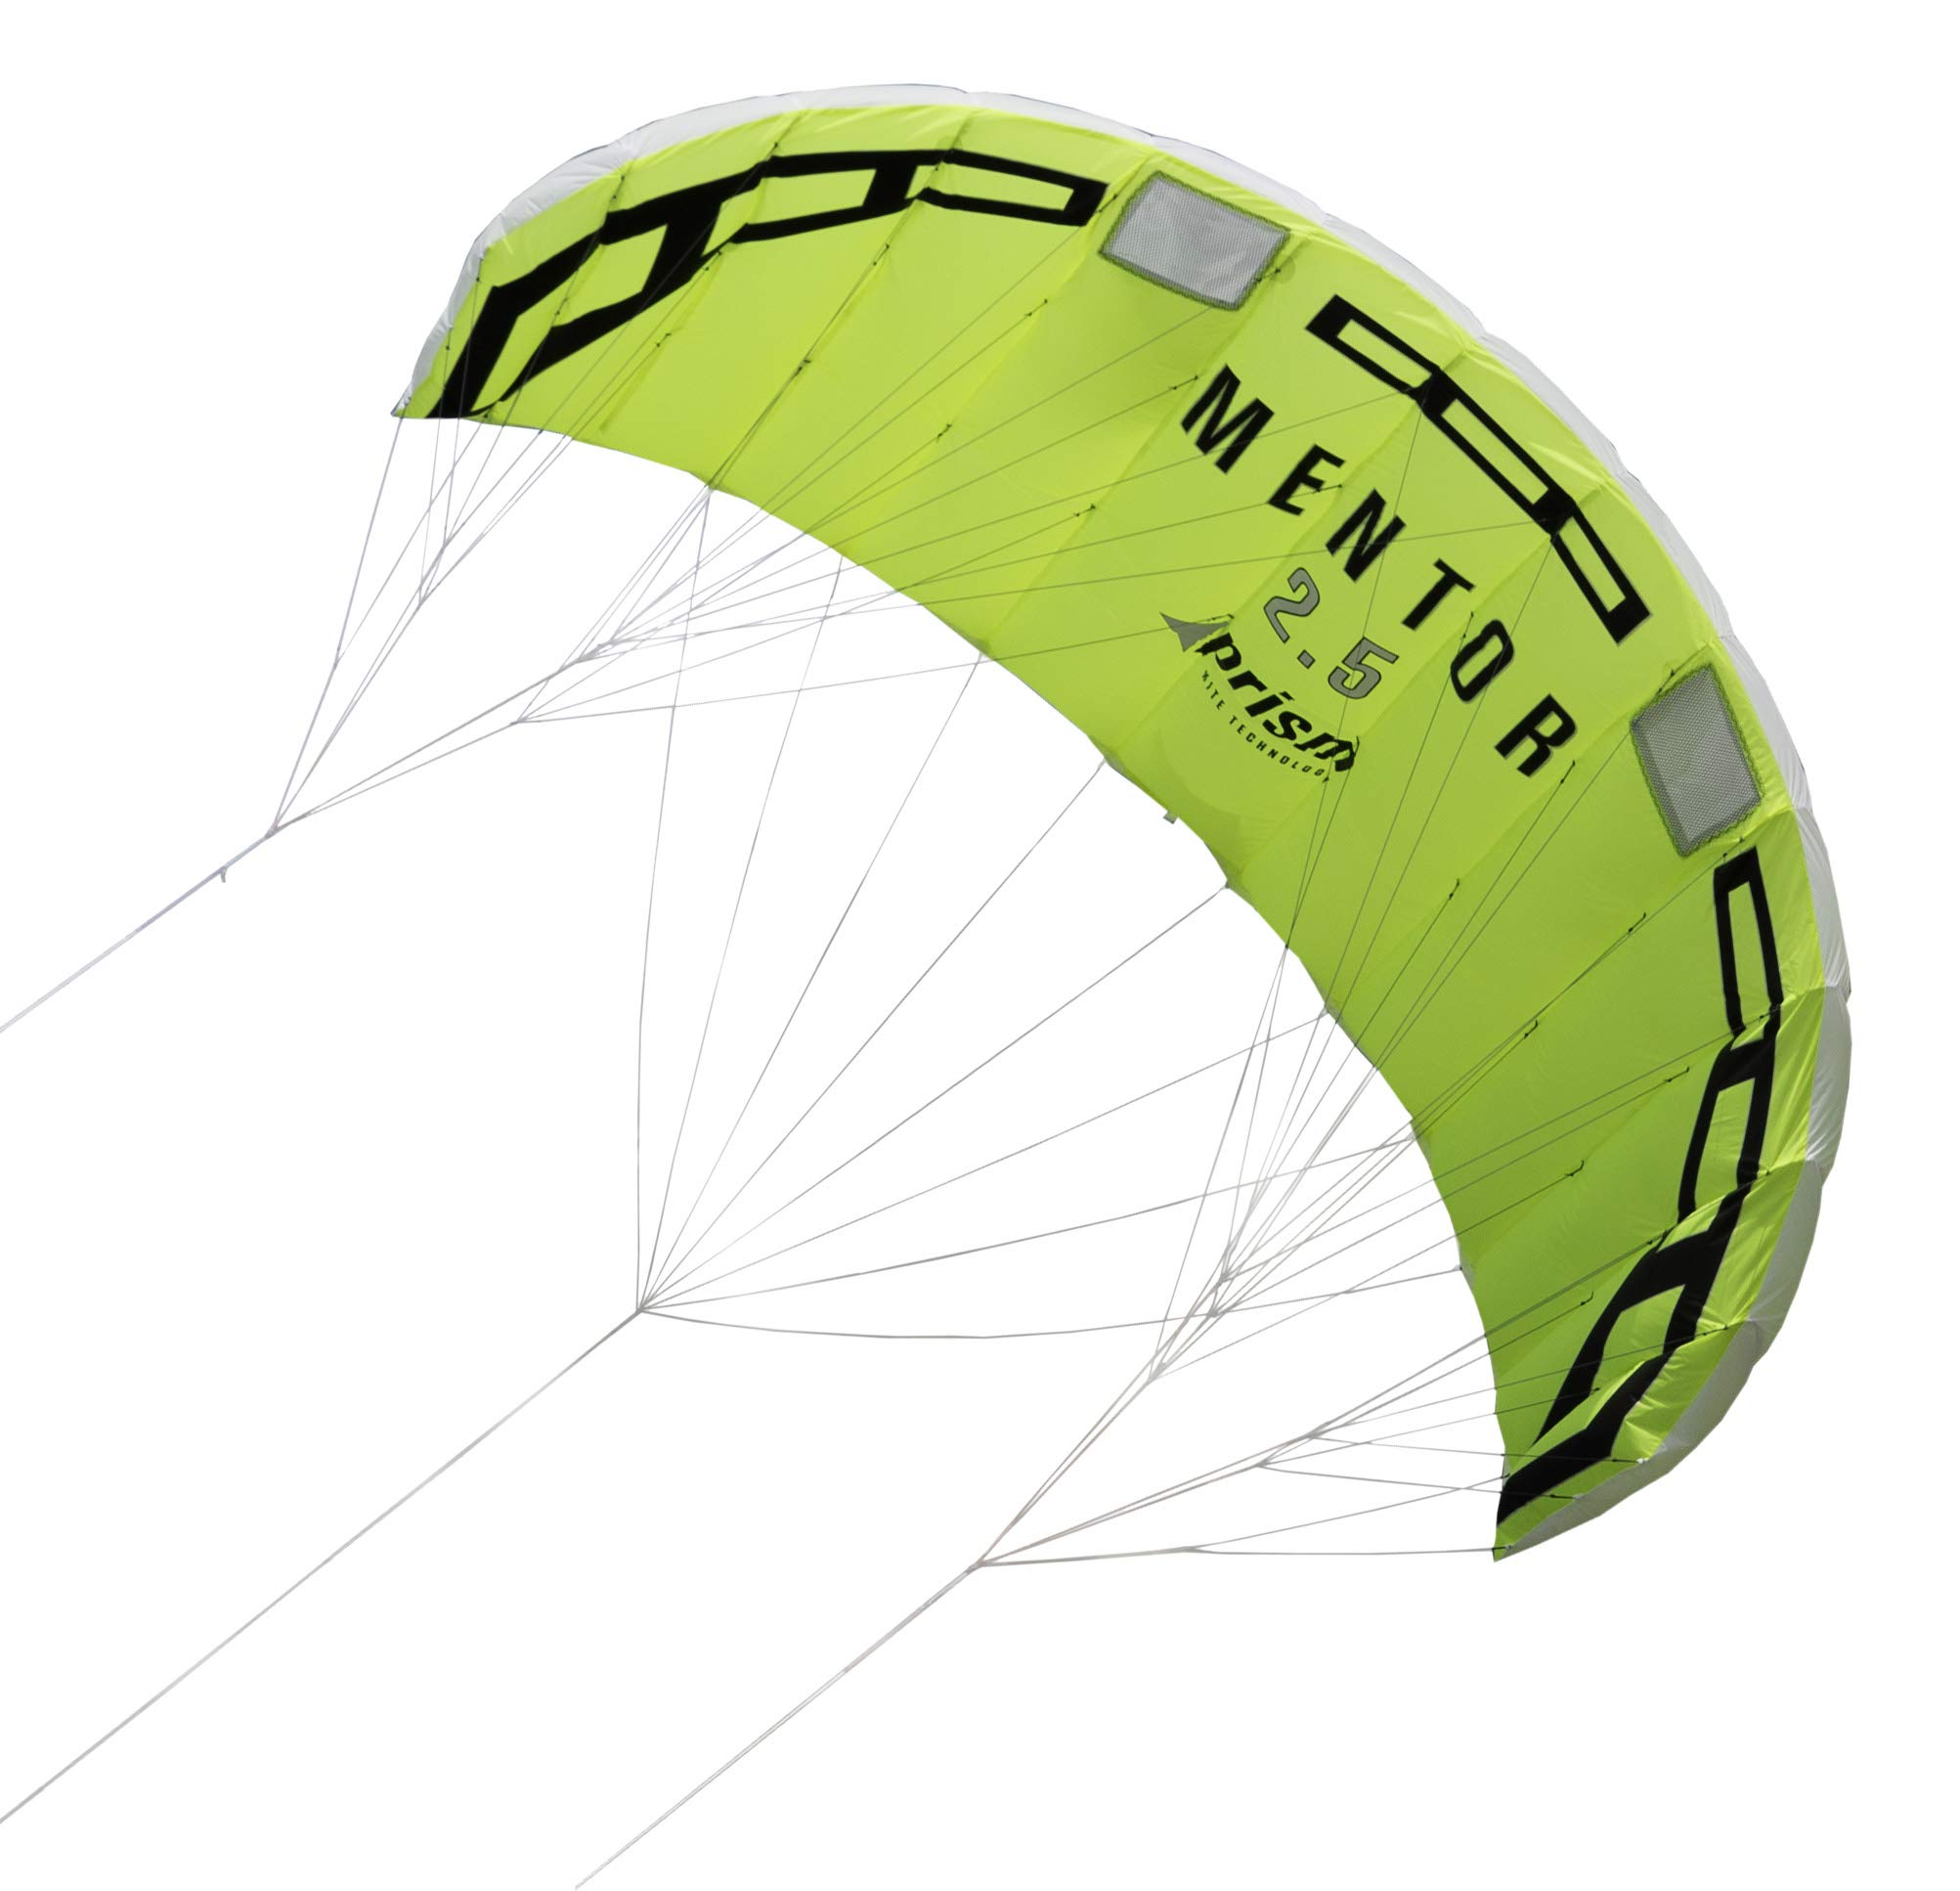 Prism Mentor 2.5m Water-relaunchable Three-line Power Kite Ready to Fly with Control bar, Ground Stake and Quick Release Safety Leash